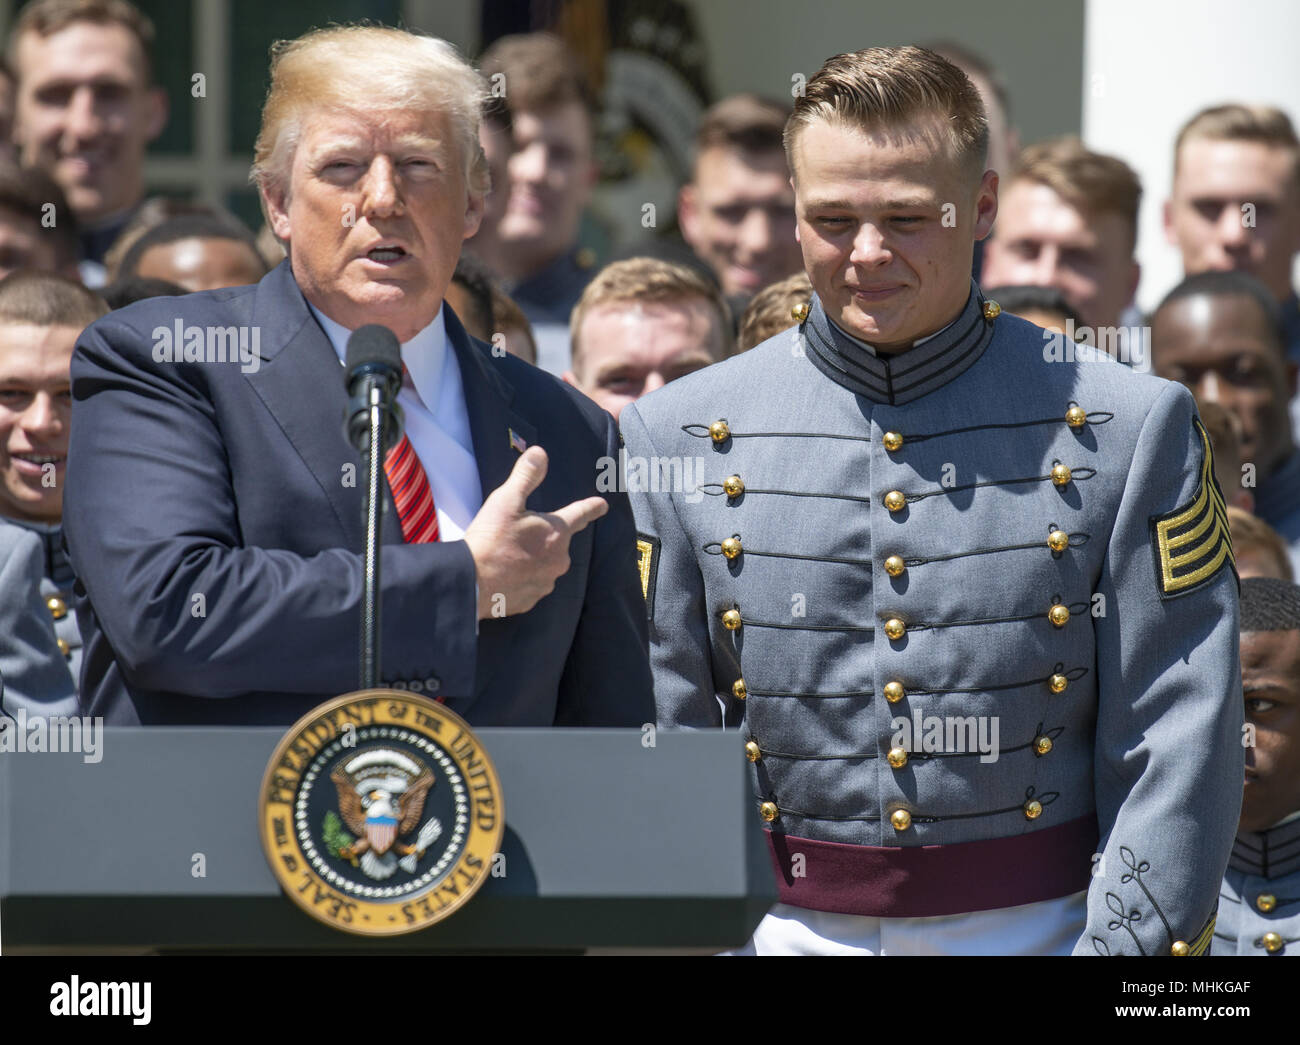 77161a560 United States President Donald J. Trump recognizes defensive lineman and co-Captain  John Voit